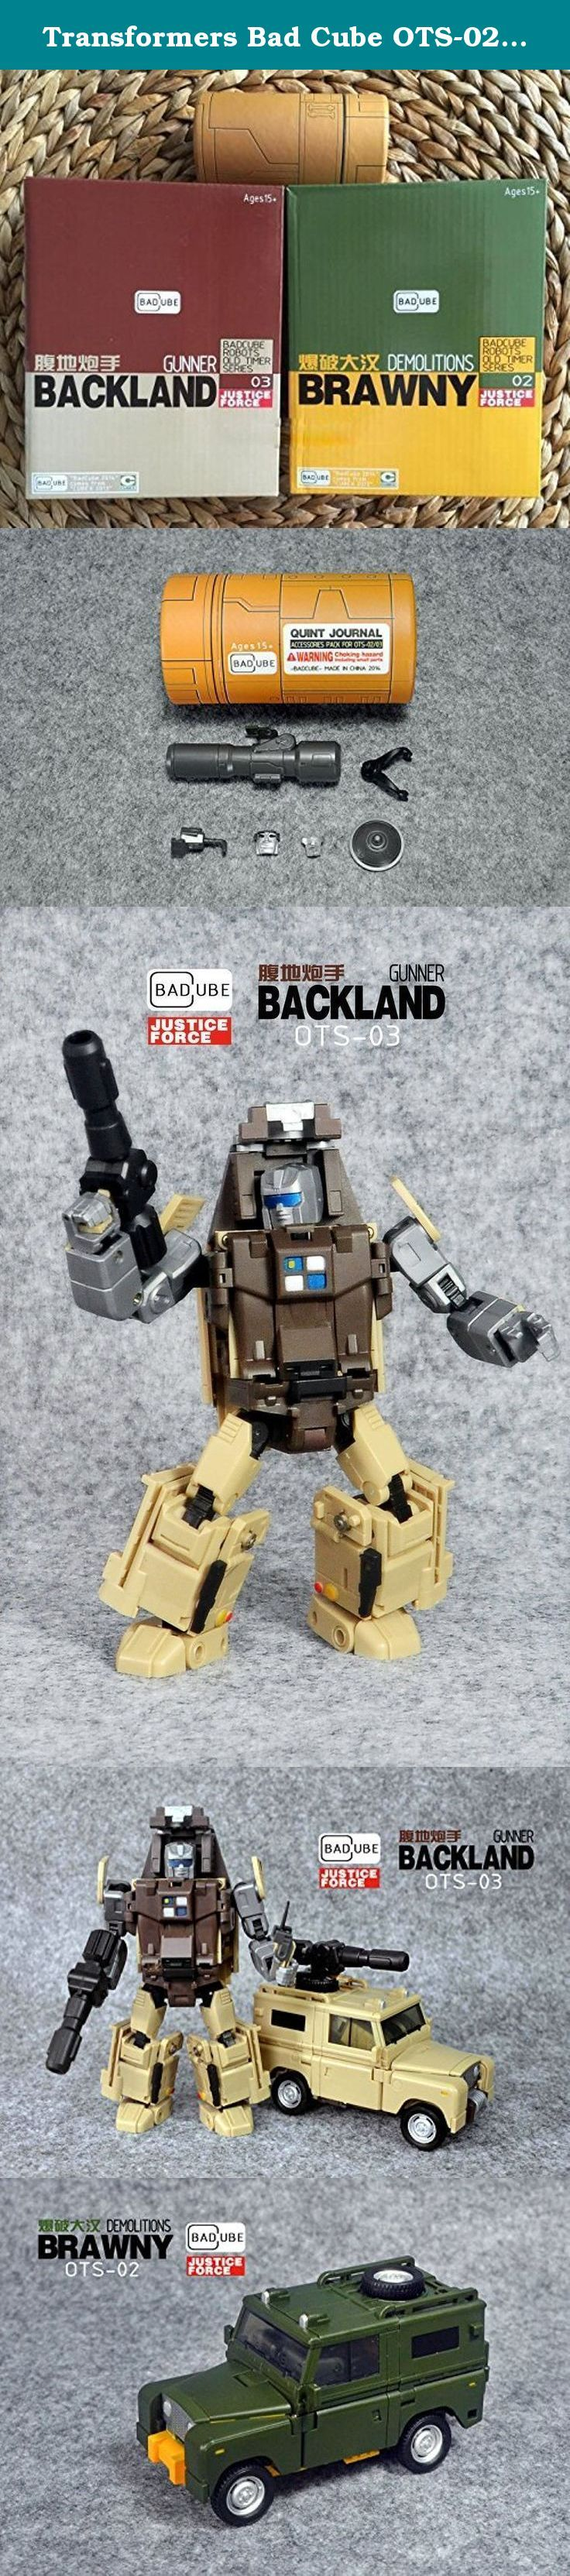 Transformers Bad Cube OTS-02 Brawn OTS-03 Outback Action Figure. (1)The import duties, taxes are not included in the item price or shipping charges and these charges are under the responsibility of the buyers. Therefore, please contact the customs office of your country to confirm these extra costs before the purchase. (2)Because there are several procedures during the international shipping process, like the customs, they might open the packages to check the security, if you find there's…